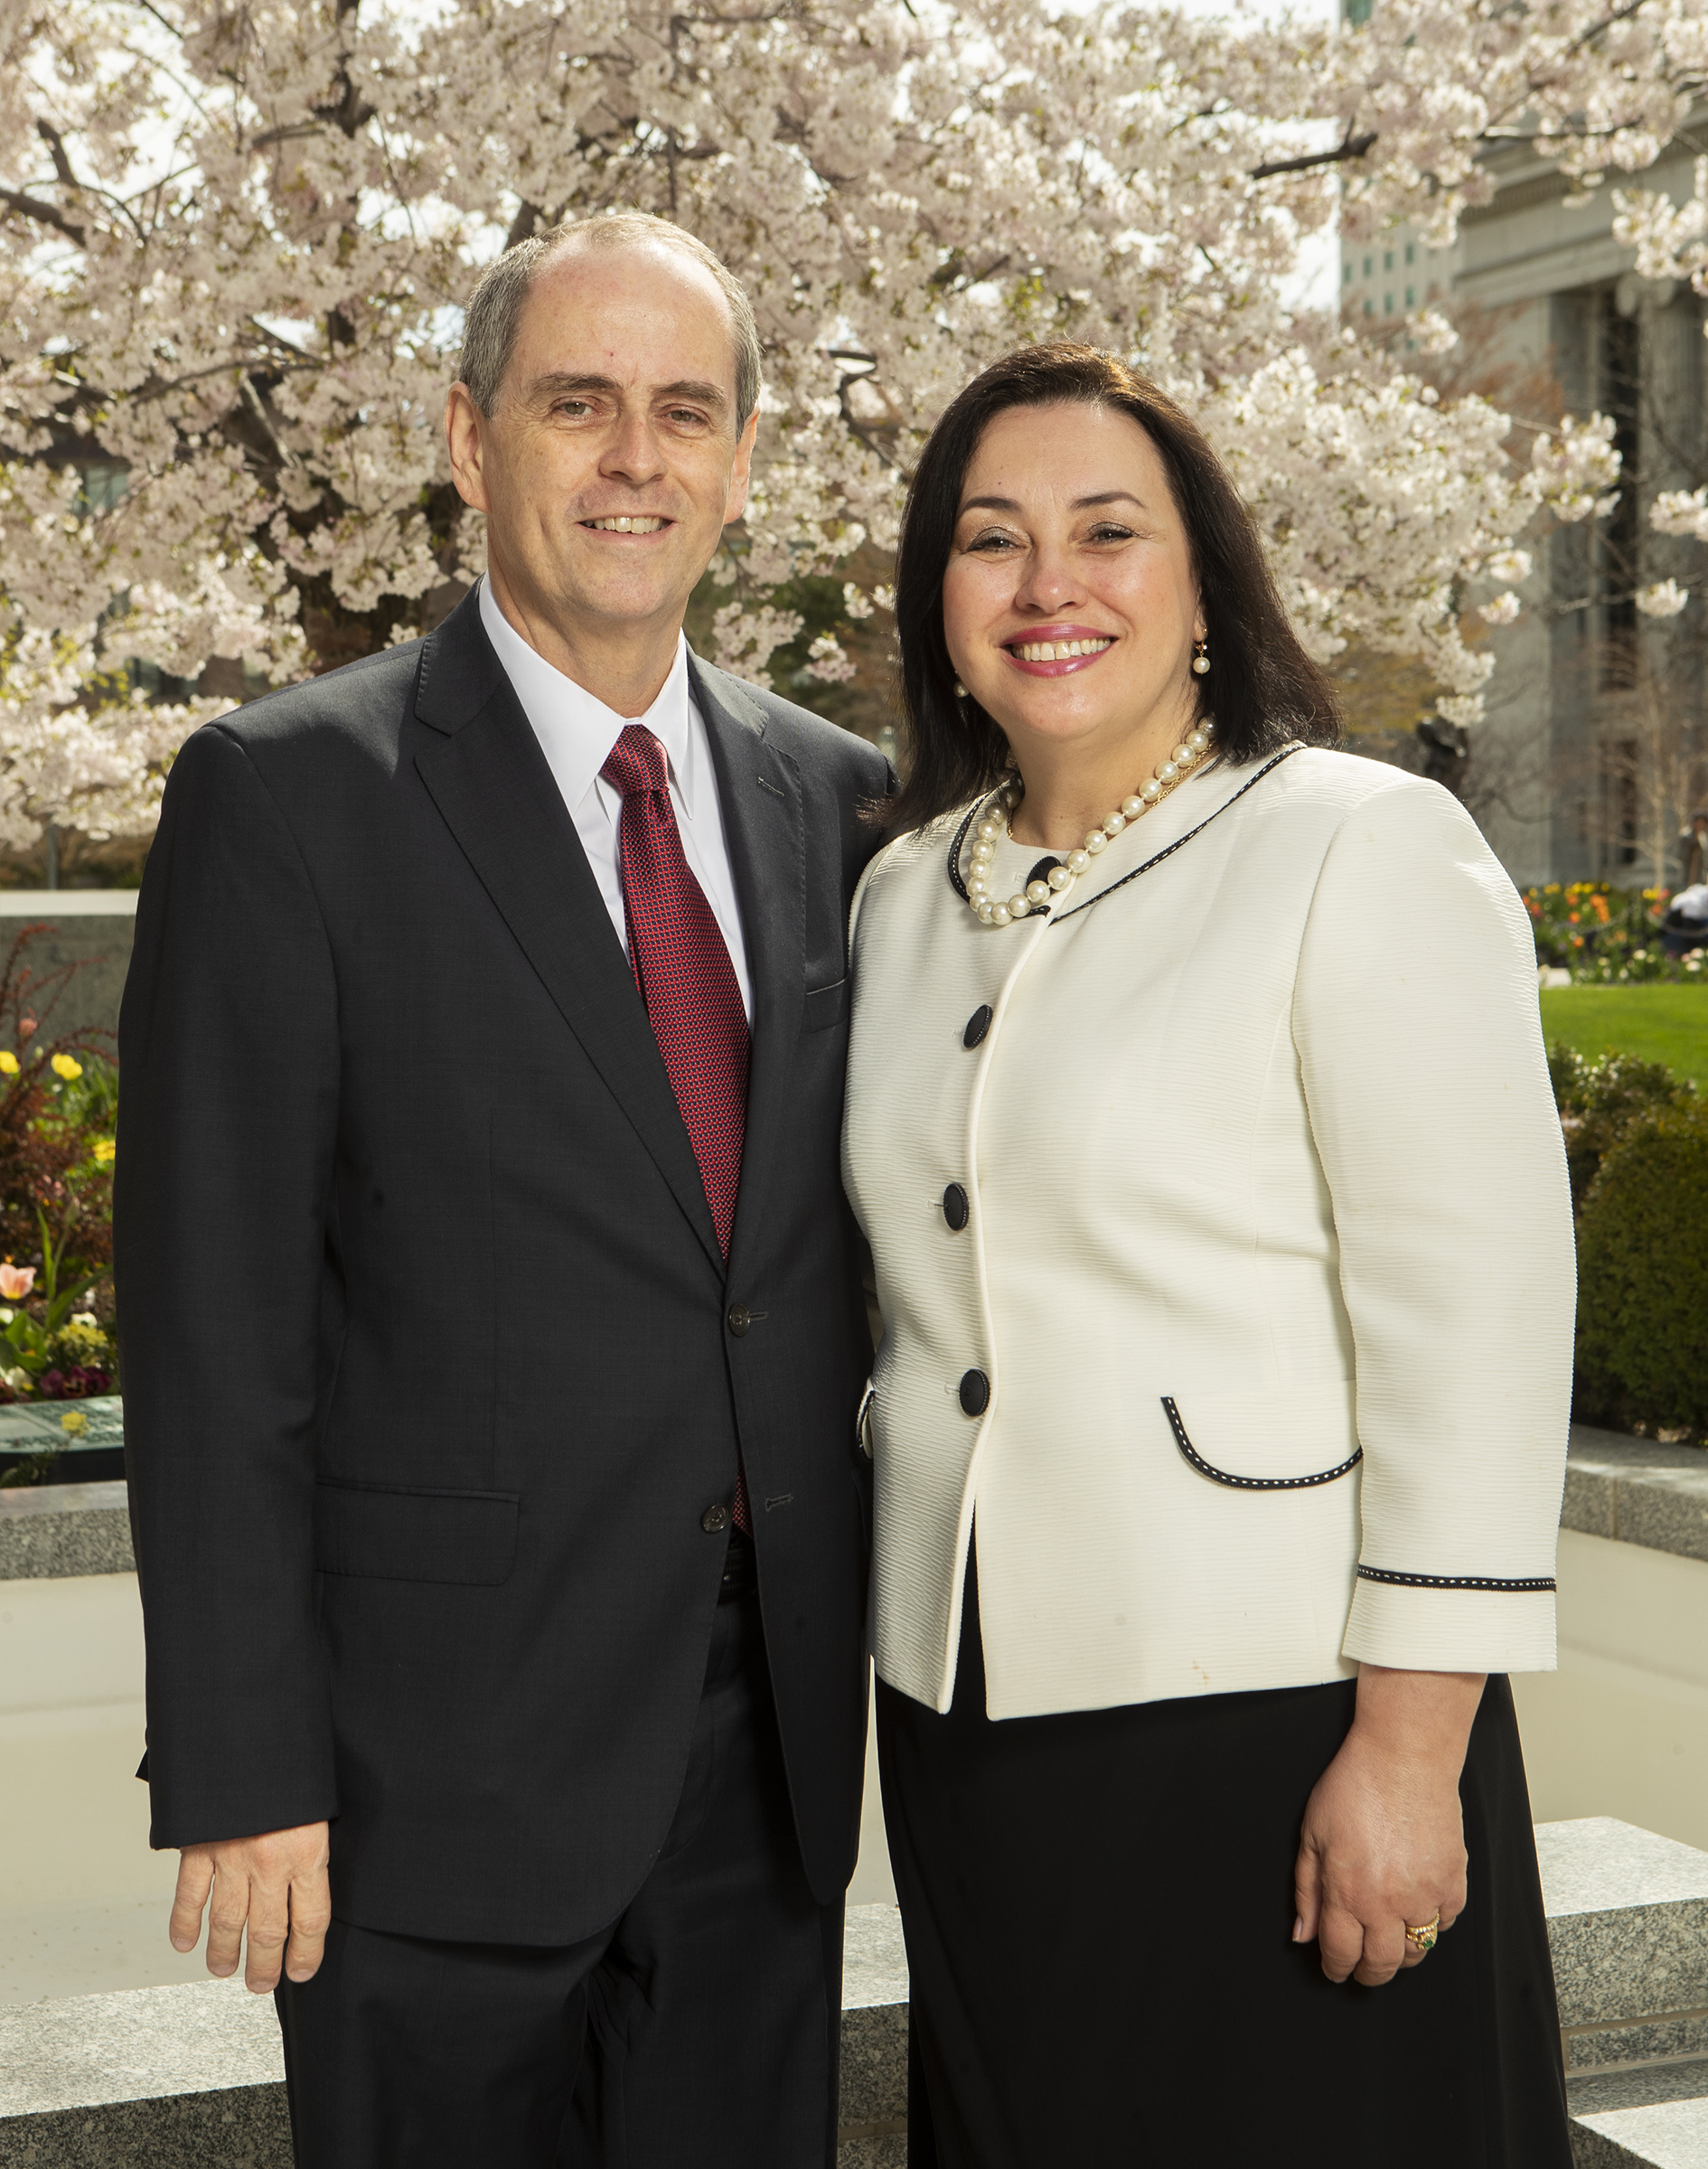 Sunday School first Counselor, Brother Milton da Rocha Camargo and his wife, Sister Patricia Camargo, pose for a photo at the Church Office Building in Salt Lake City on Monday, April 8, 2019.